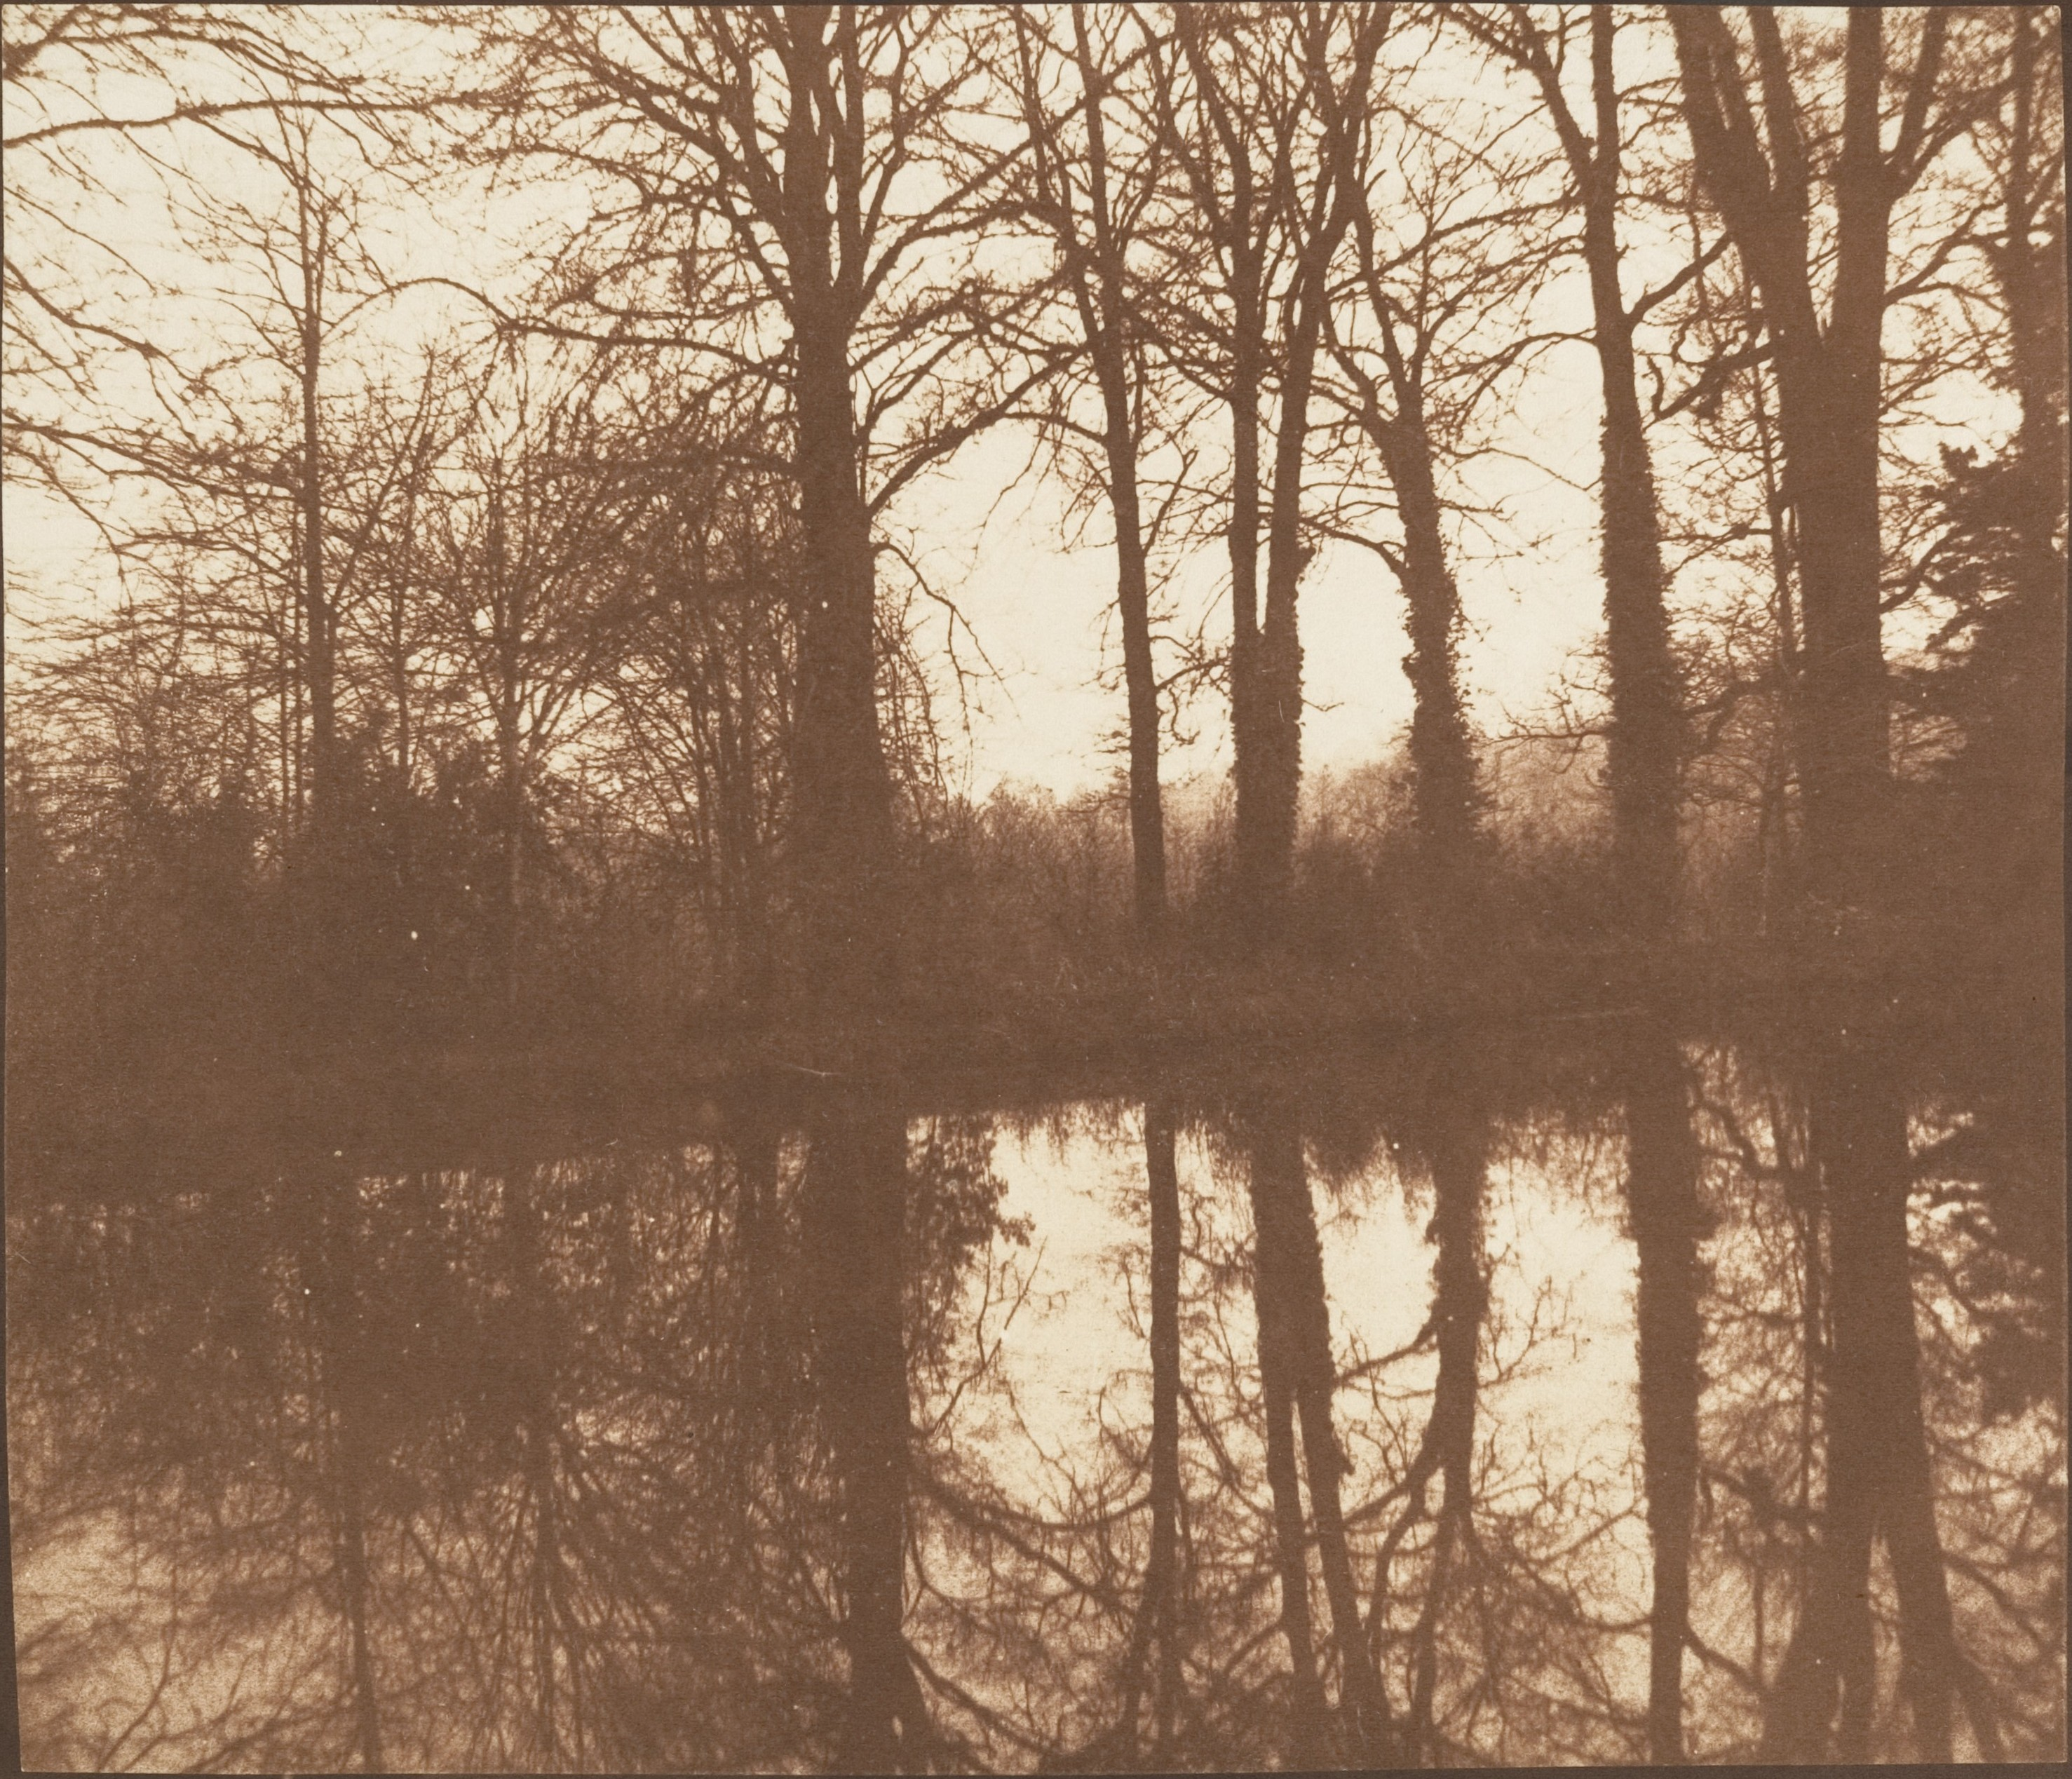 [Winter Trees, Reflected in a Pond]